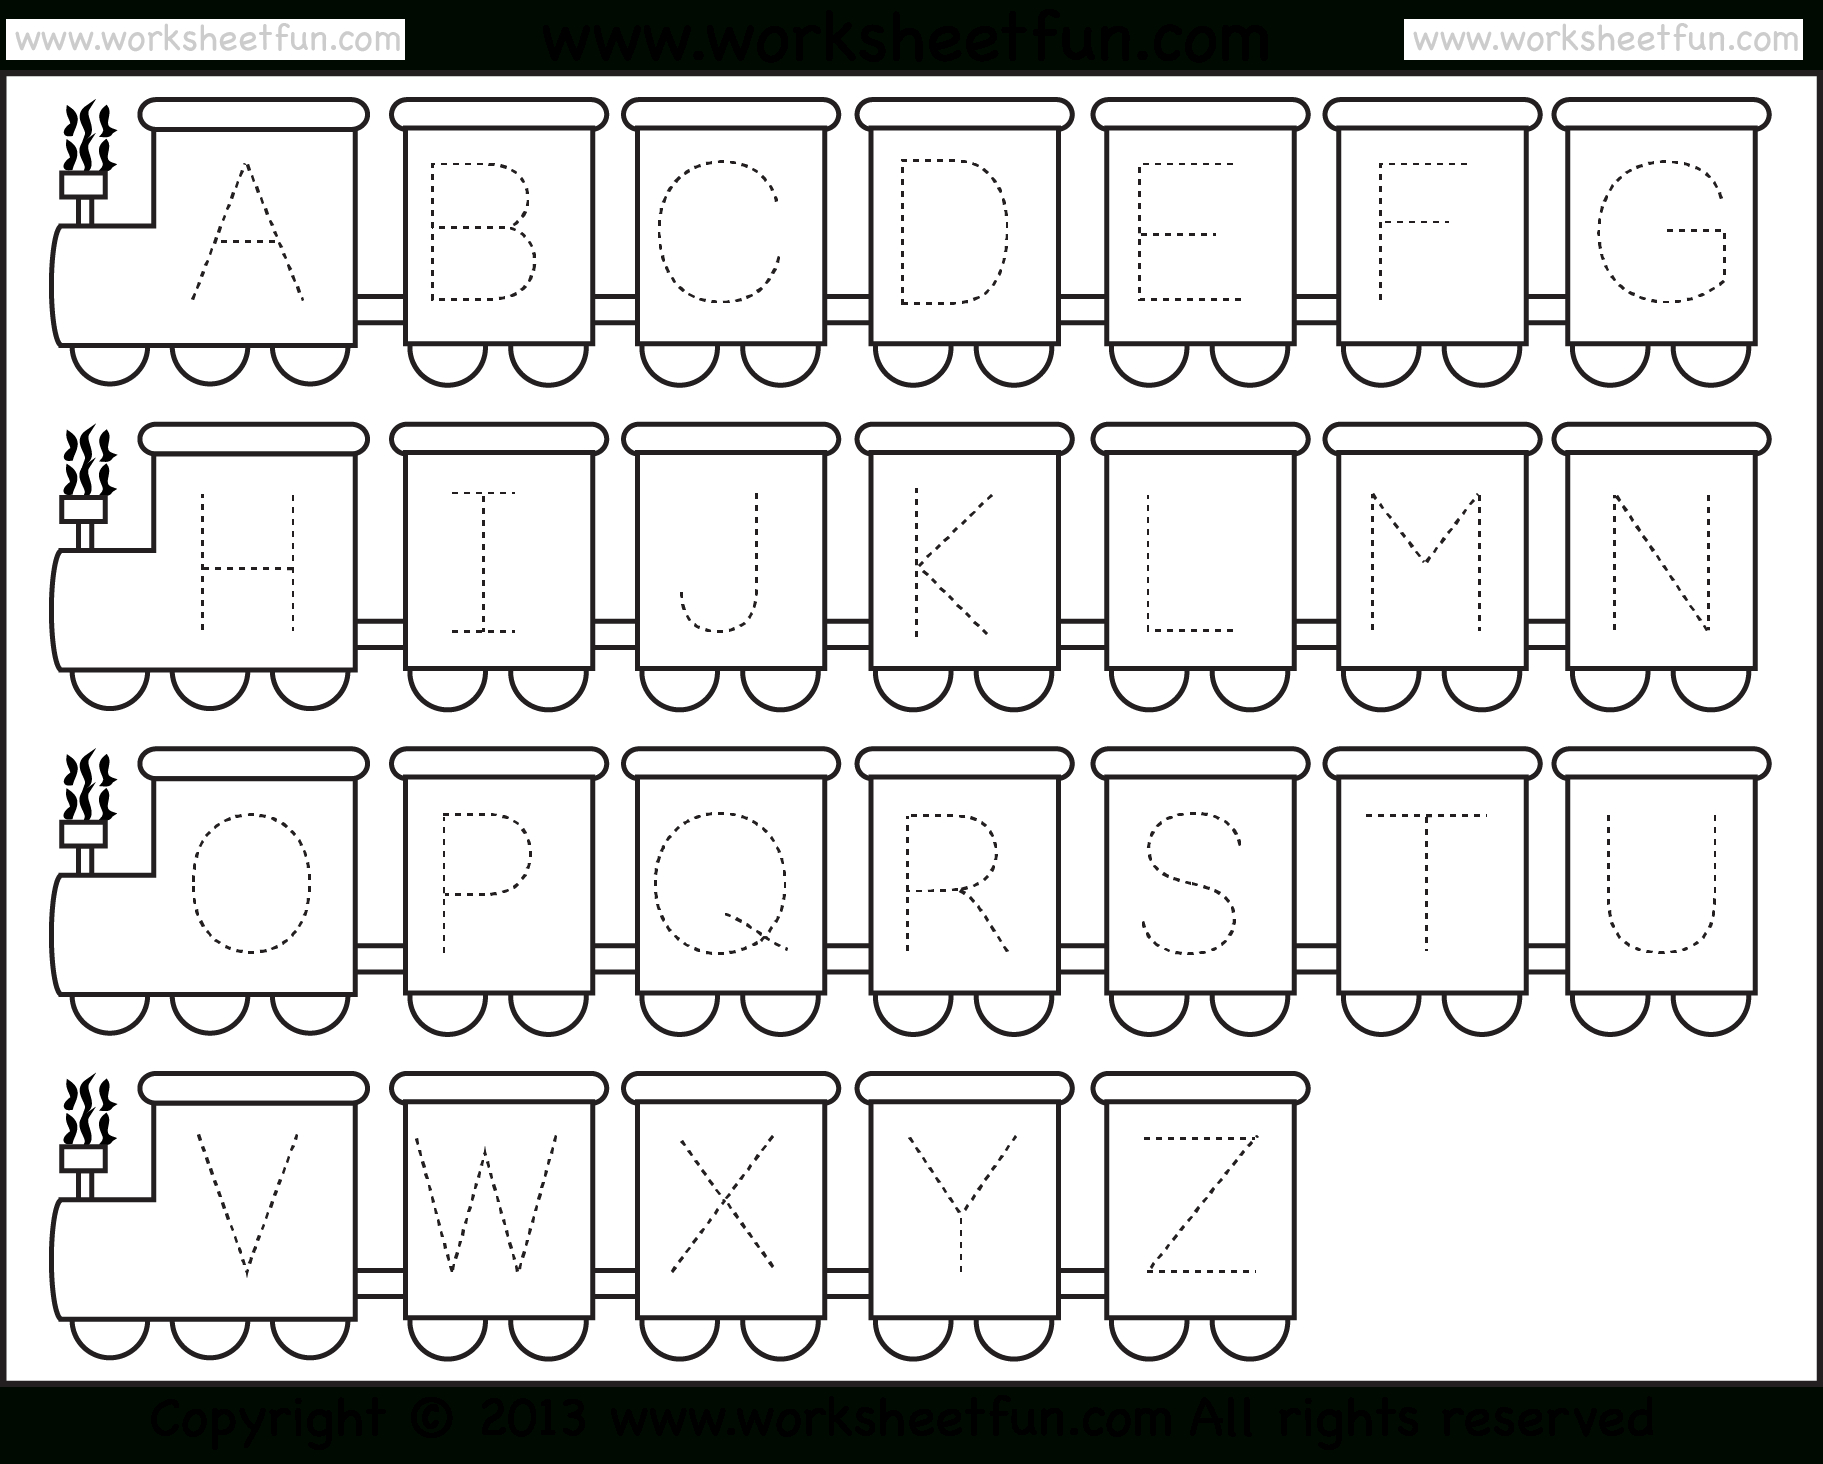 Letter Tracing Worksheet – Train Theme / Free Printable pertaining to Alphabet Tracing Kindergarten